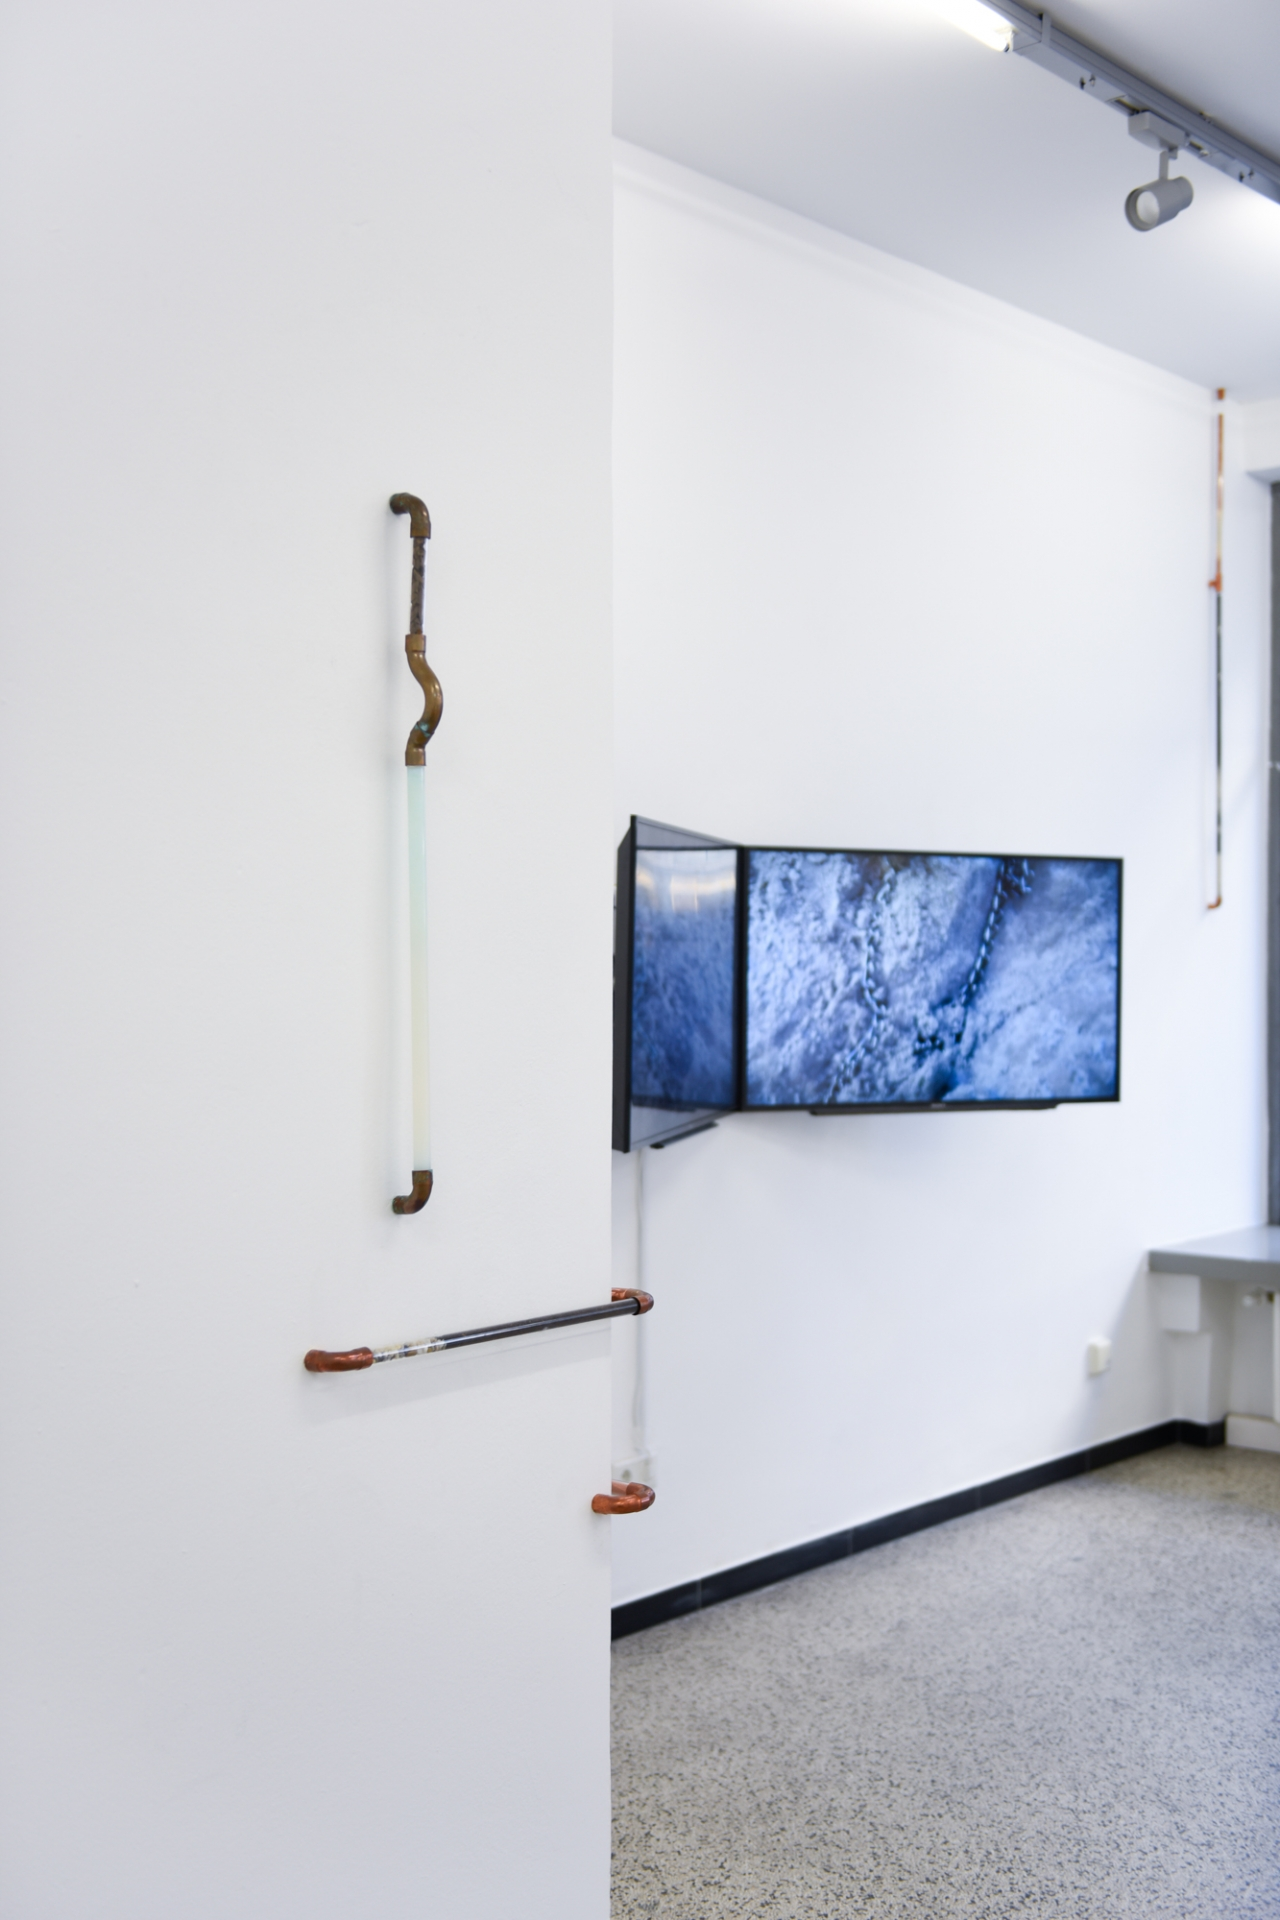 ANNKATHRIN KLUSS Neo-Chimeras (on Images and other Artificialities)